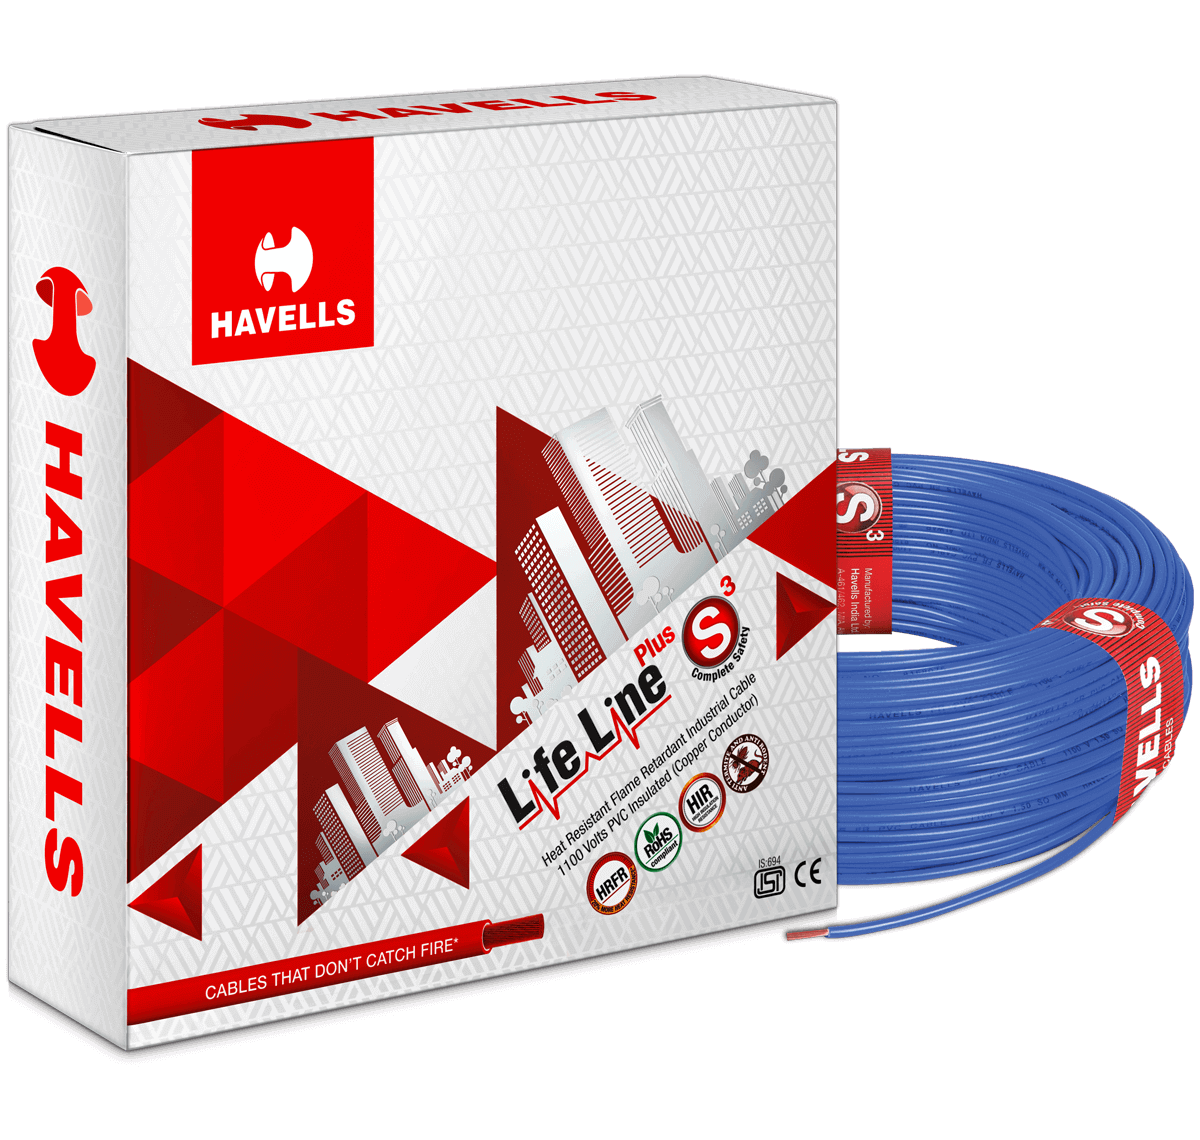 Astonishing Types Of Wires For Every Household Need Havells India Blog Wiring Digital Resources Counpmognl